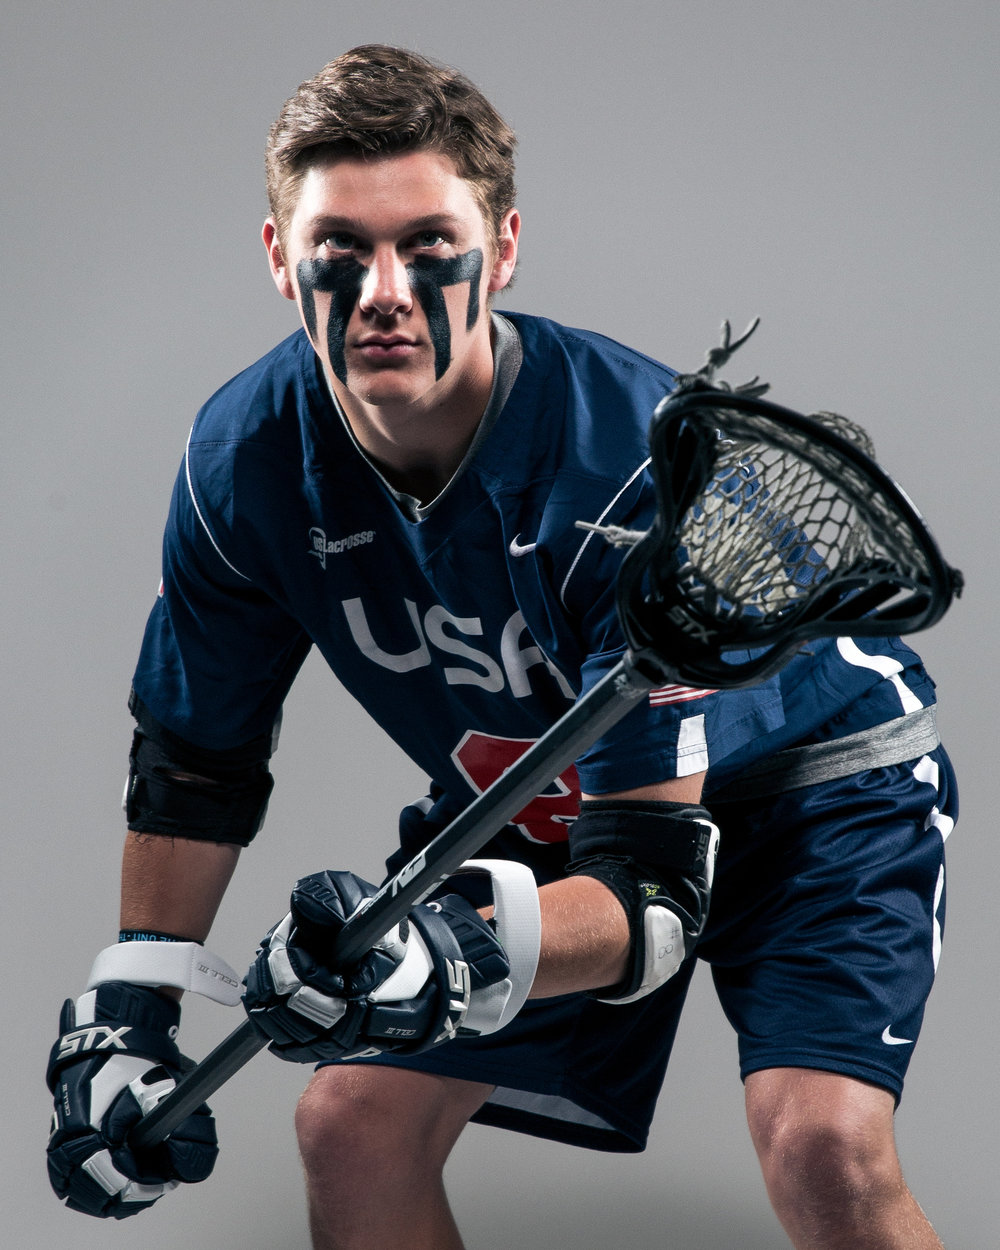 April 28, 2016; Baltimore, MD, USA; Johns Hopkins Blue Jays and U-19 Team USA defender Patrick Foley poses for a portrait at Historic Homewood Field on campus in Baltimore, MD.